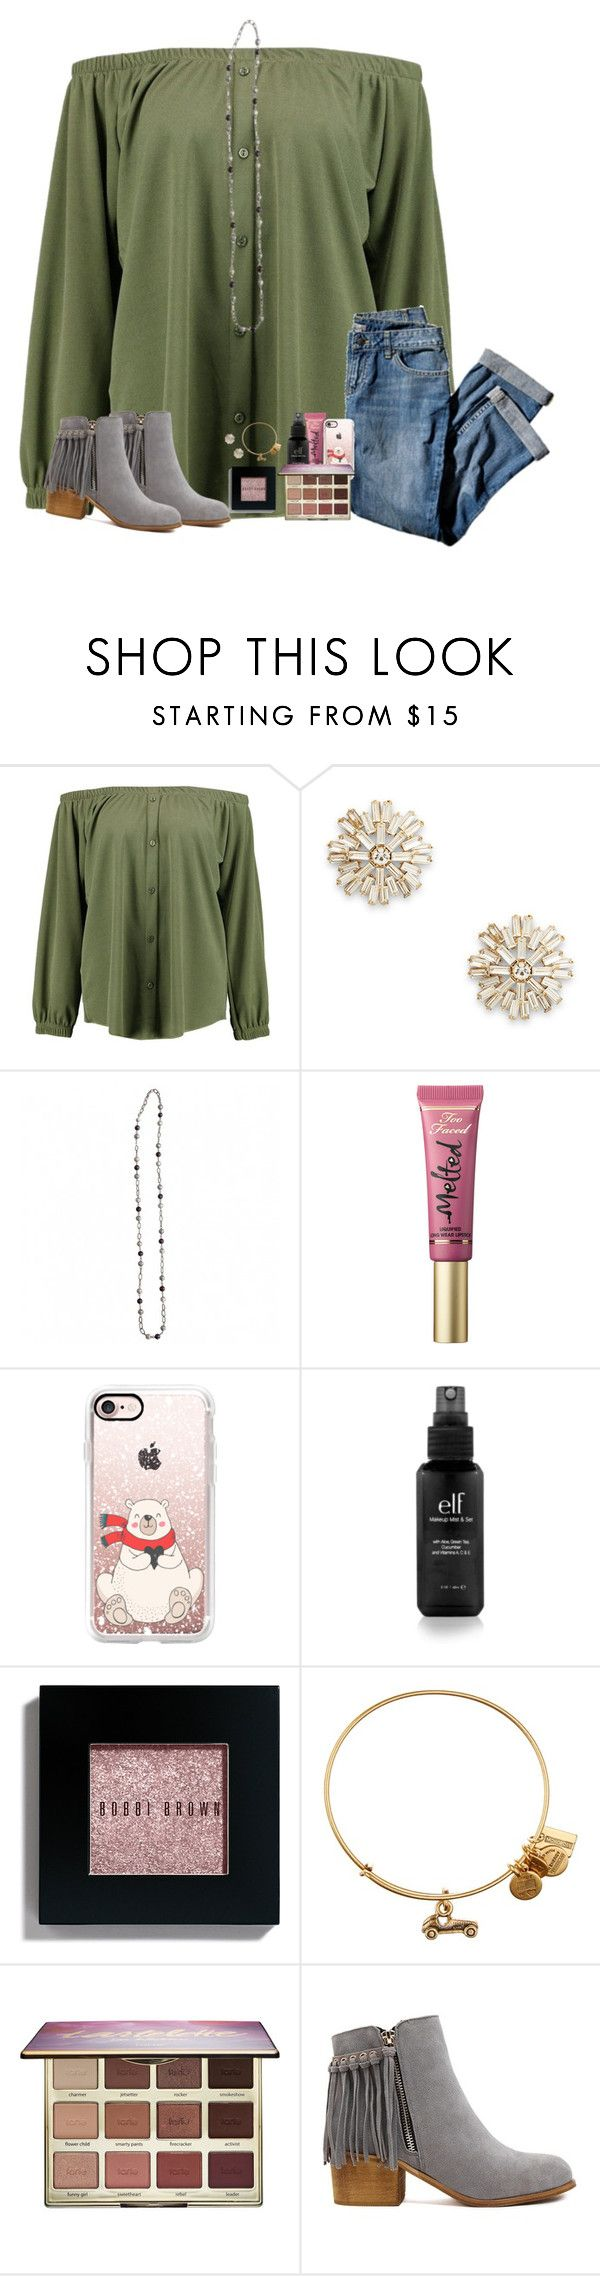 """do y'all have any song recommendations?"" by hailstails ❤ liked on Polyvore featuring Boohoo, Sole Society, J.Jill, Too Faced Cosmetics, Casetify, Bobbi Brown Cosmetics, Alex and Ani and tarte"